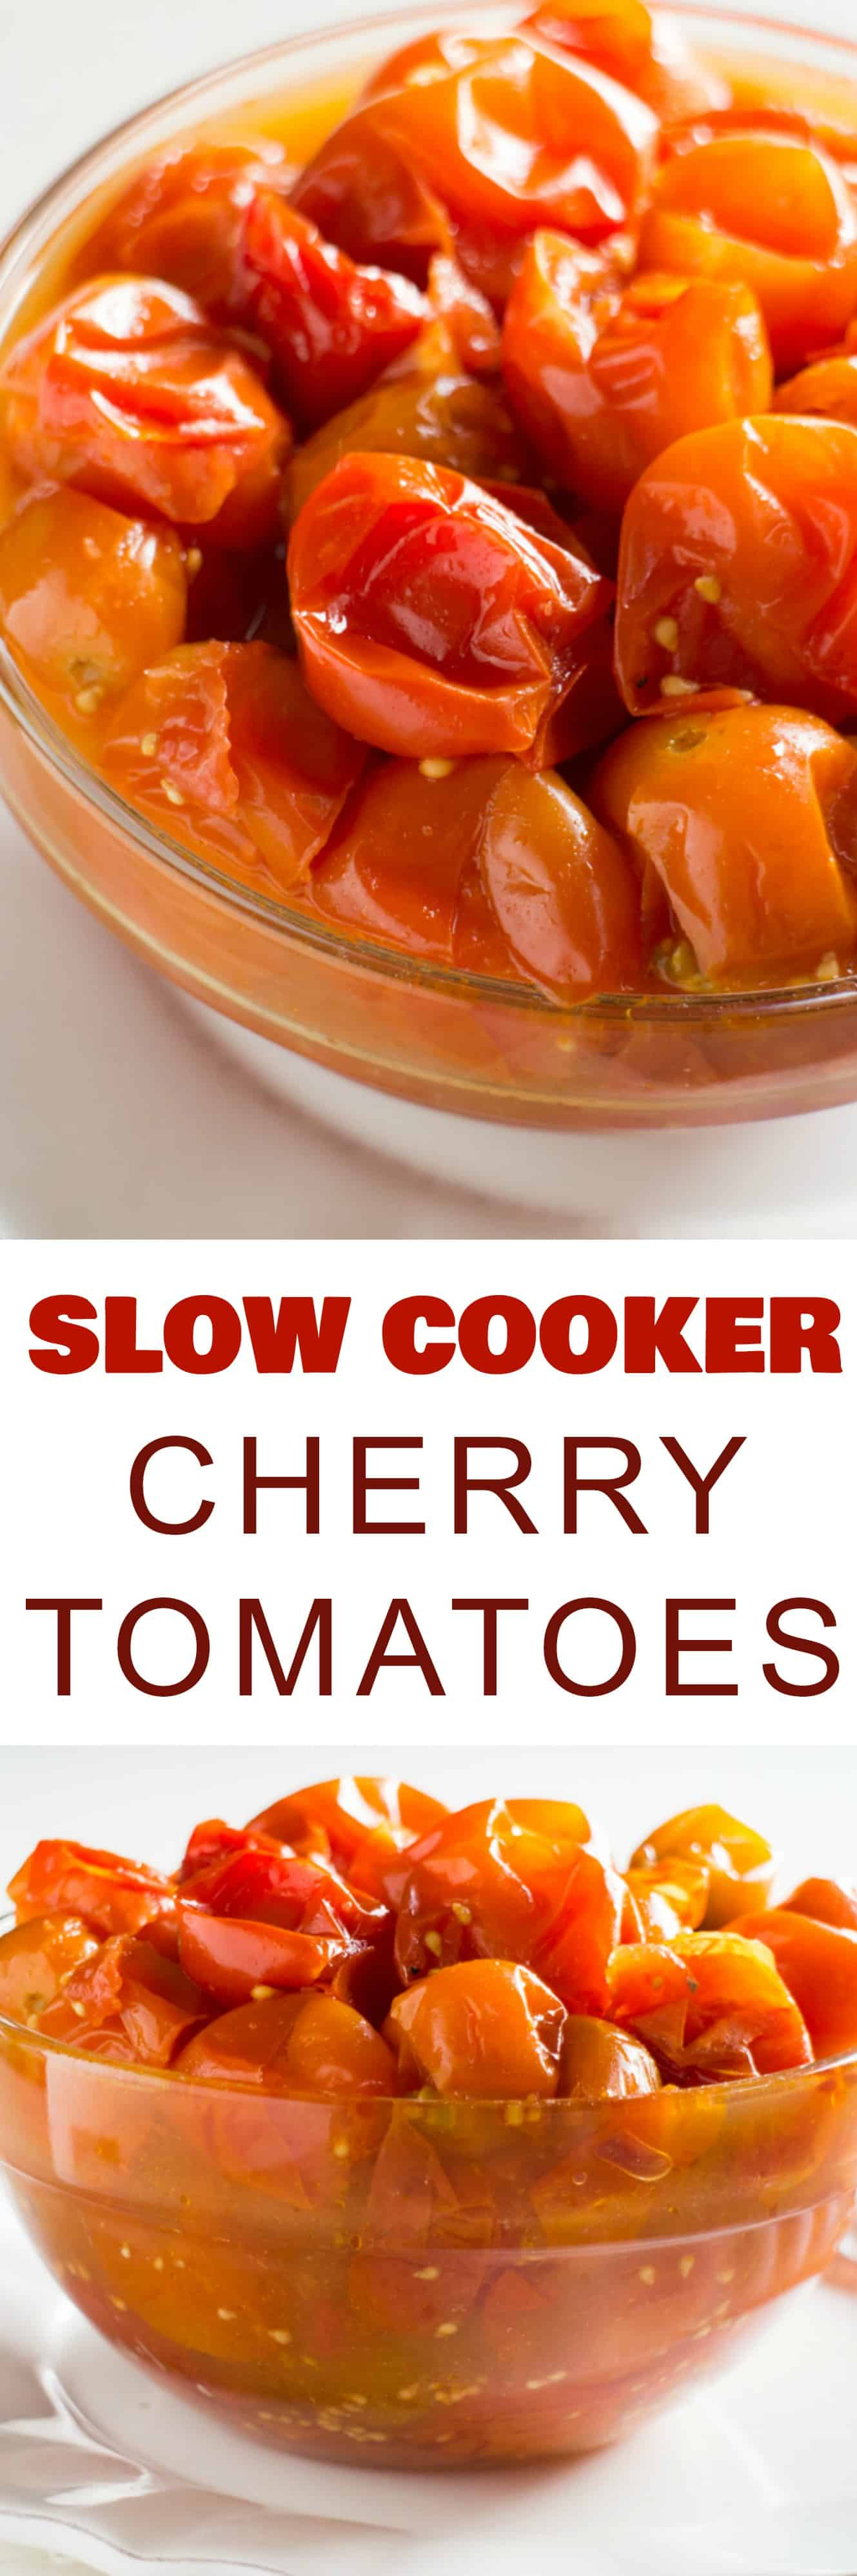 EASY, SLOW COOKER Cherry Tomatoes recipe! This healthy cherry tomatoes crockpot recipe is ready in 5 hours! Serve these as a side dish, or they make a great sauce on pasta for dinner! You can preserve by canning or freezing them! I love serving them as a Thanksgiving comfort food side dish alongside green beans!